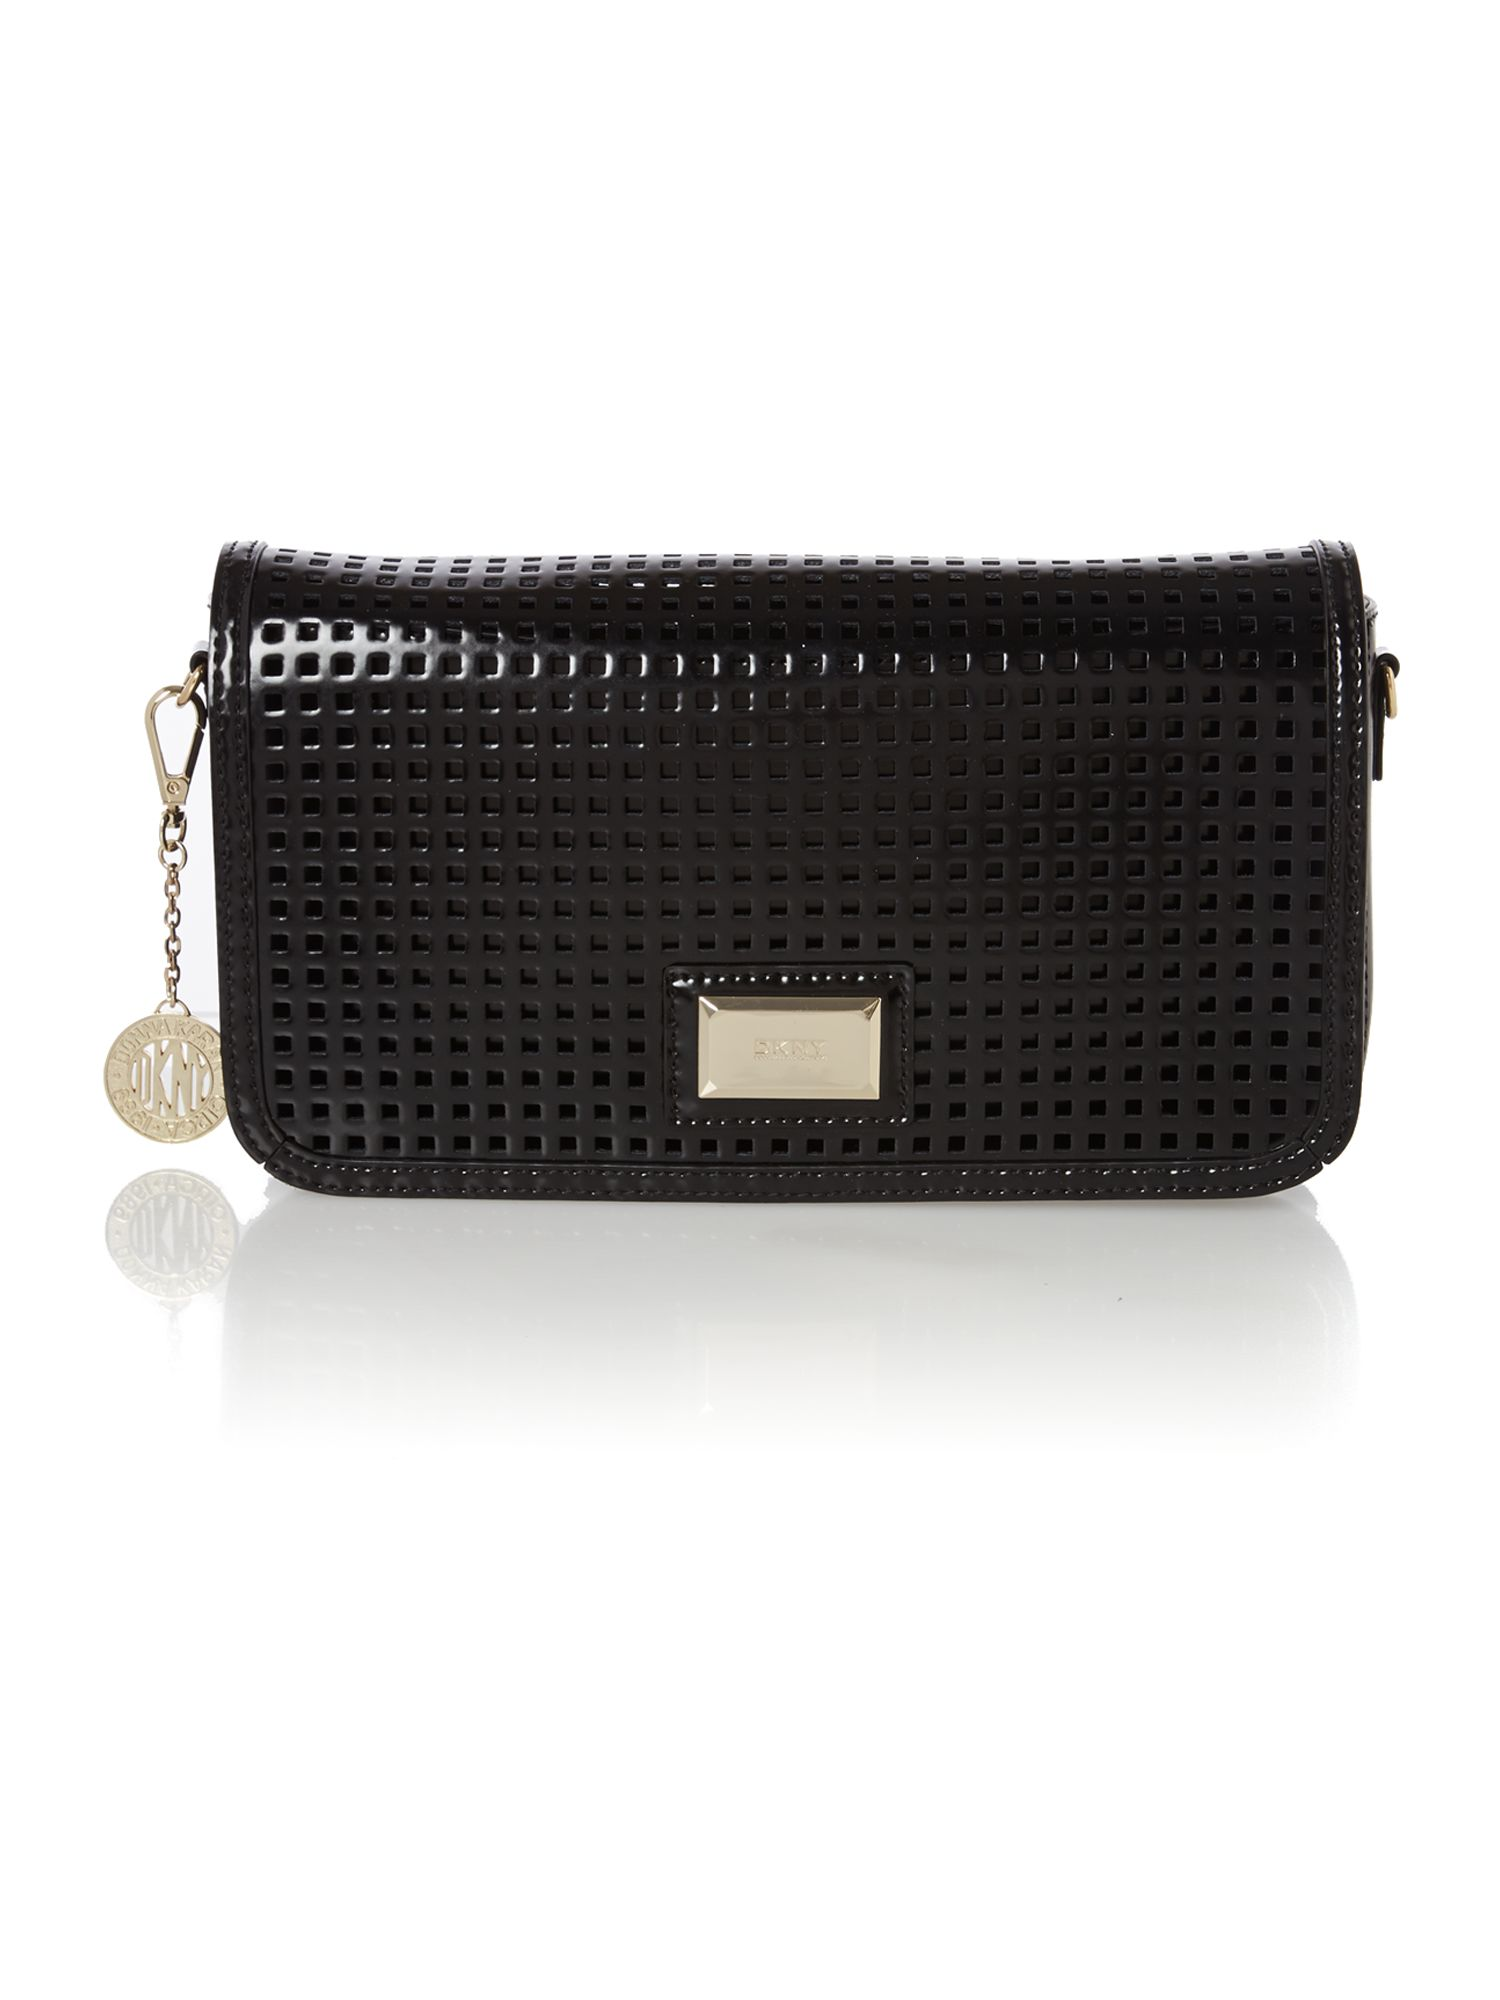 Hudson black shoulder bag